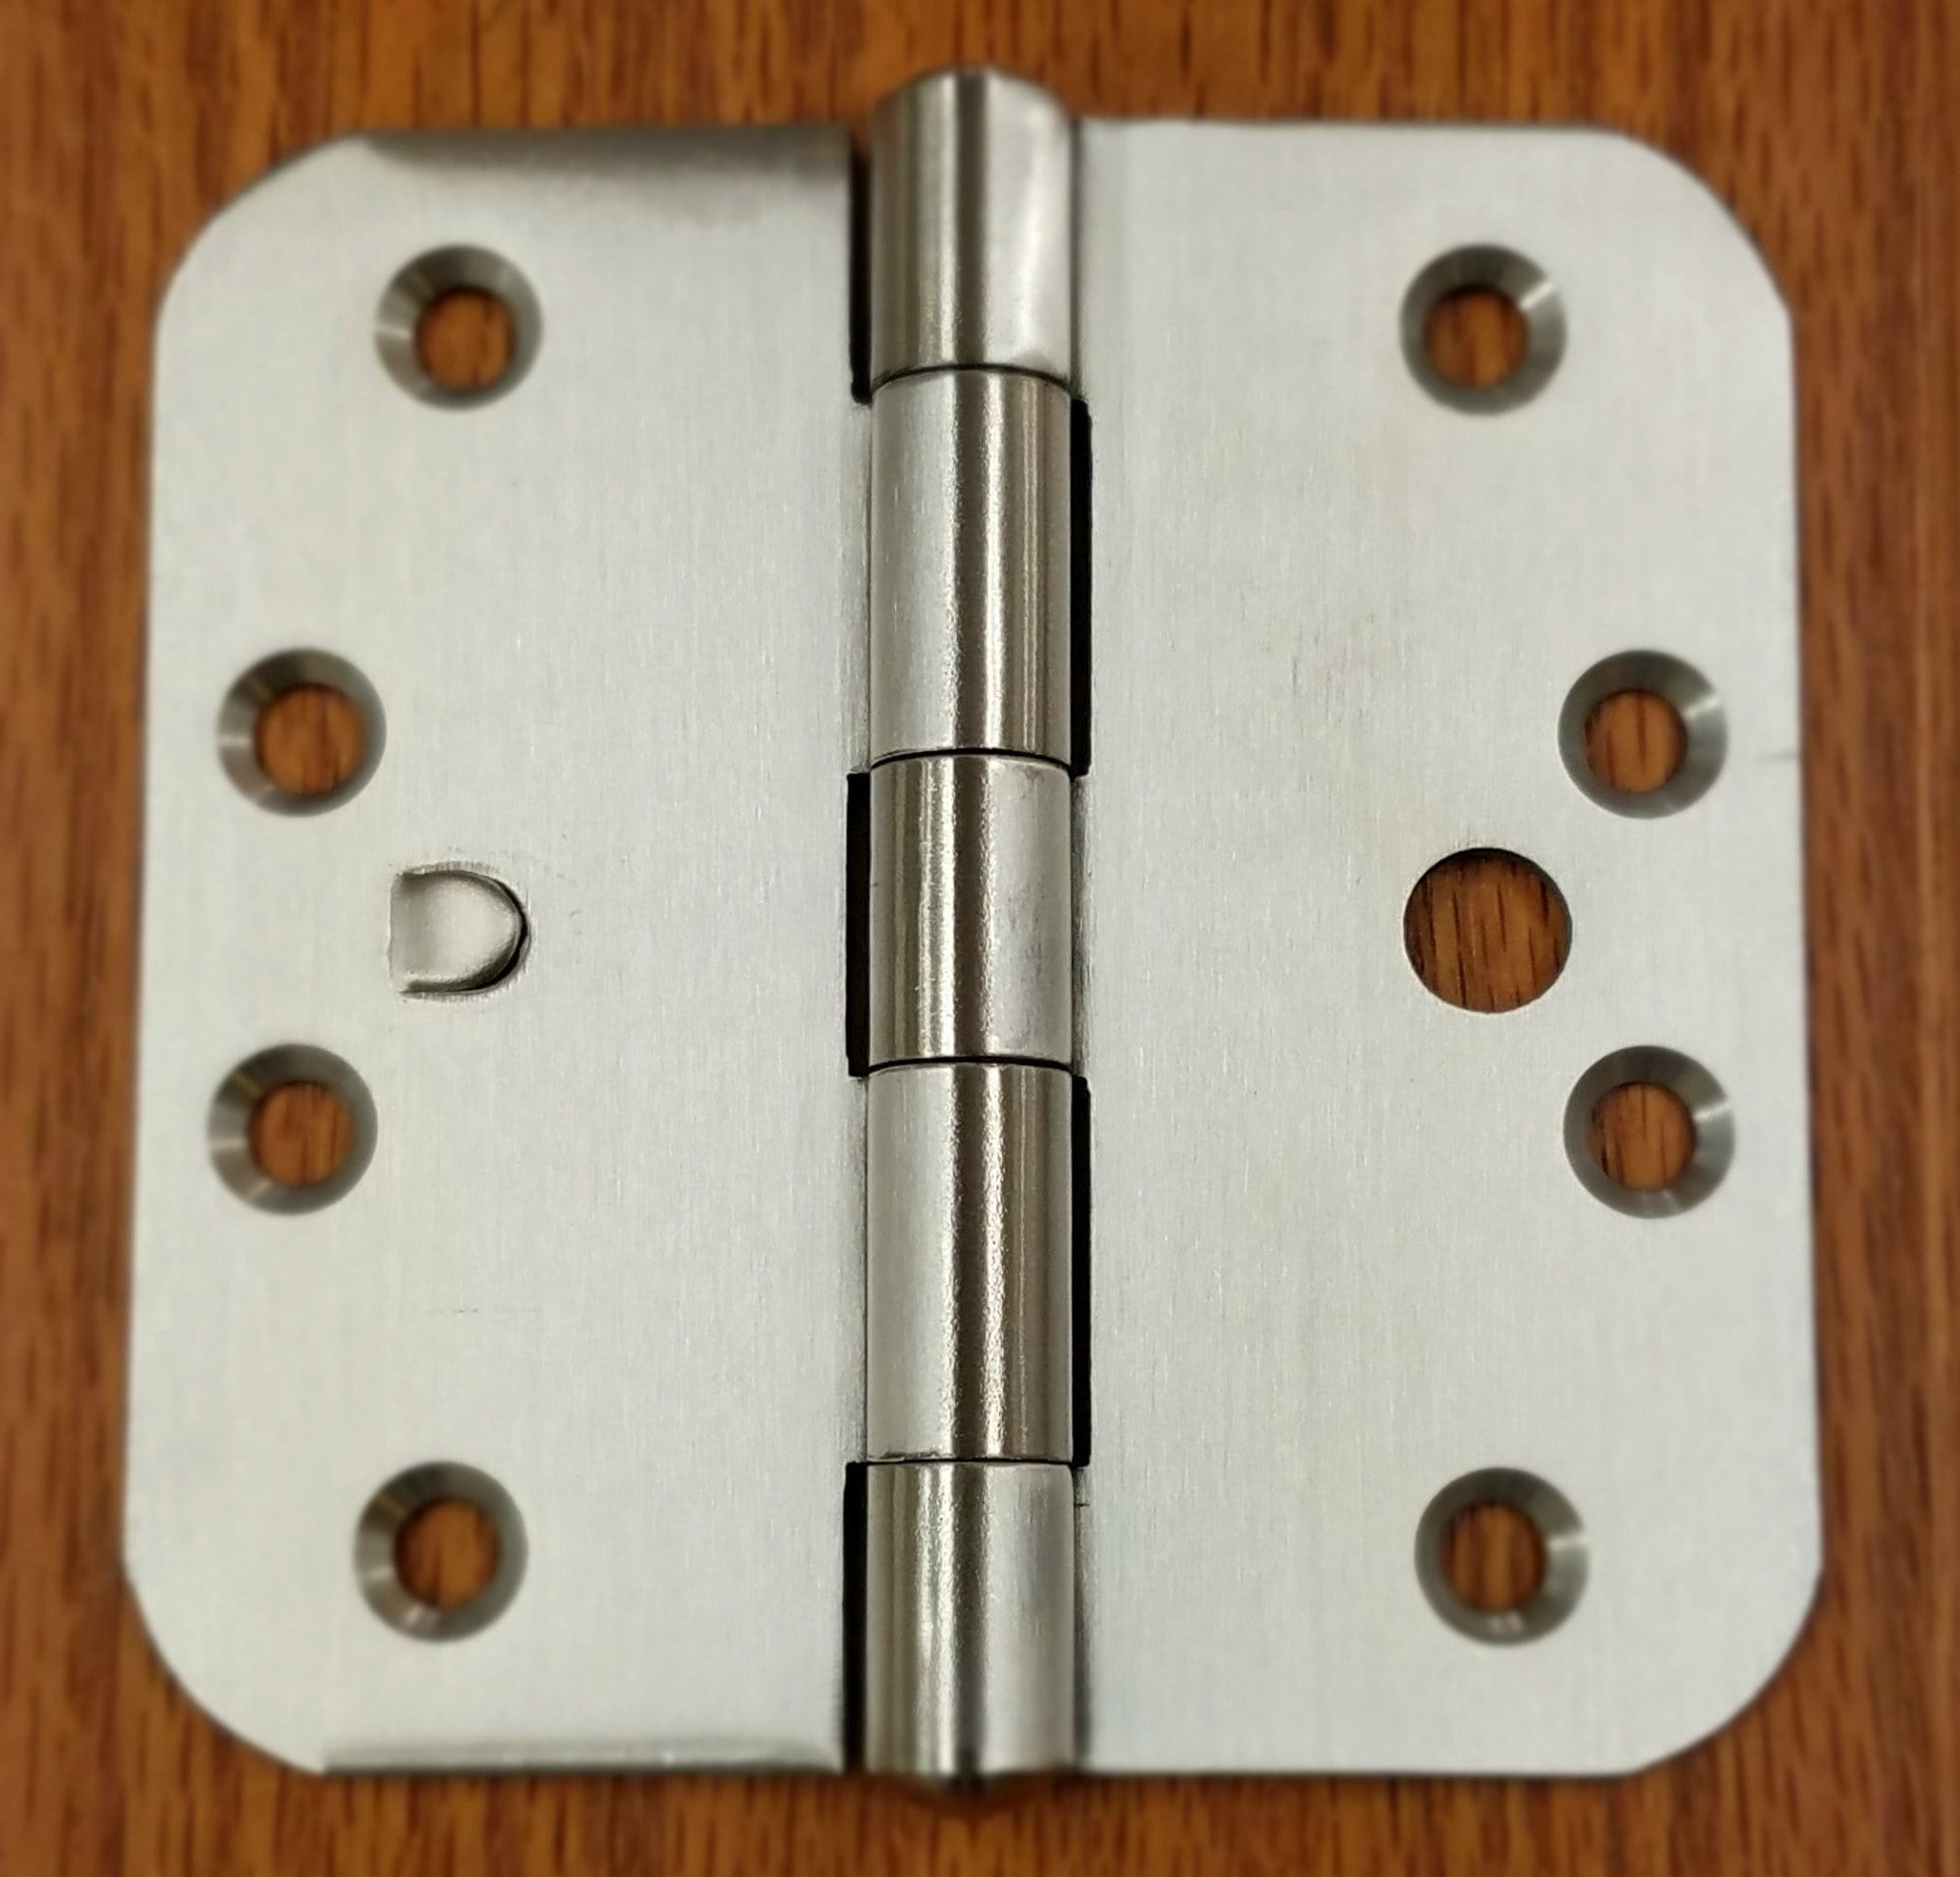 "Stainless Steel Hinges with Security Tab - 4"" x 4""  Plain Bearing Hinge with 5/8"" Radius Corners - Arch Hole Pattern - 2 Pack - Stainless Steel Hinges"